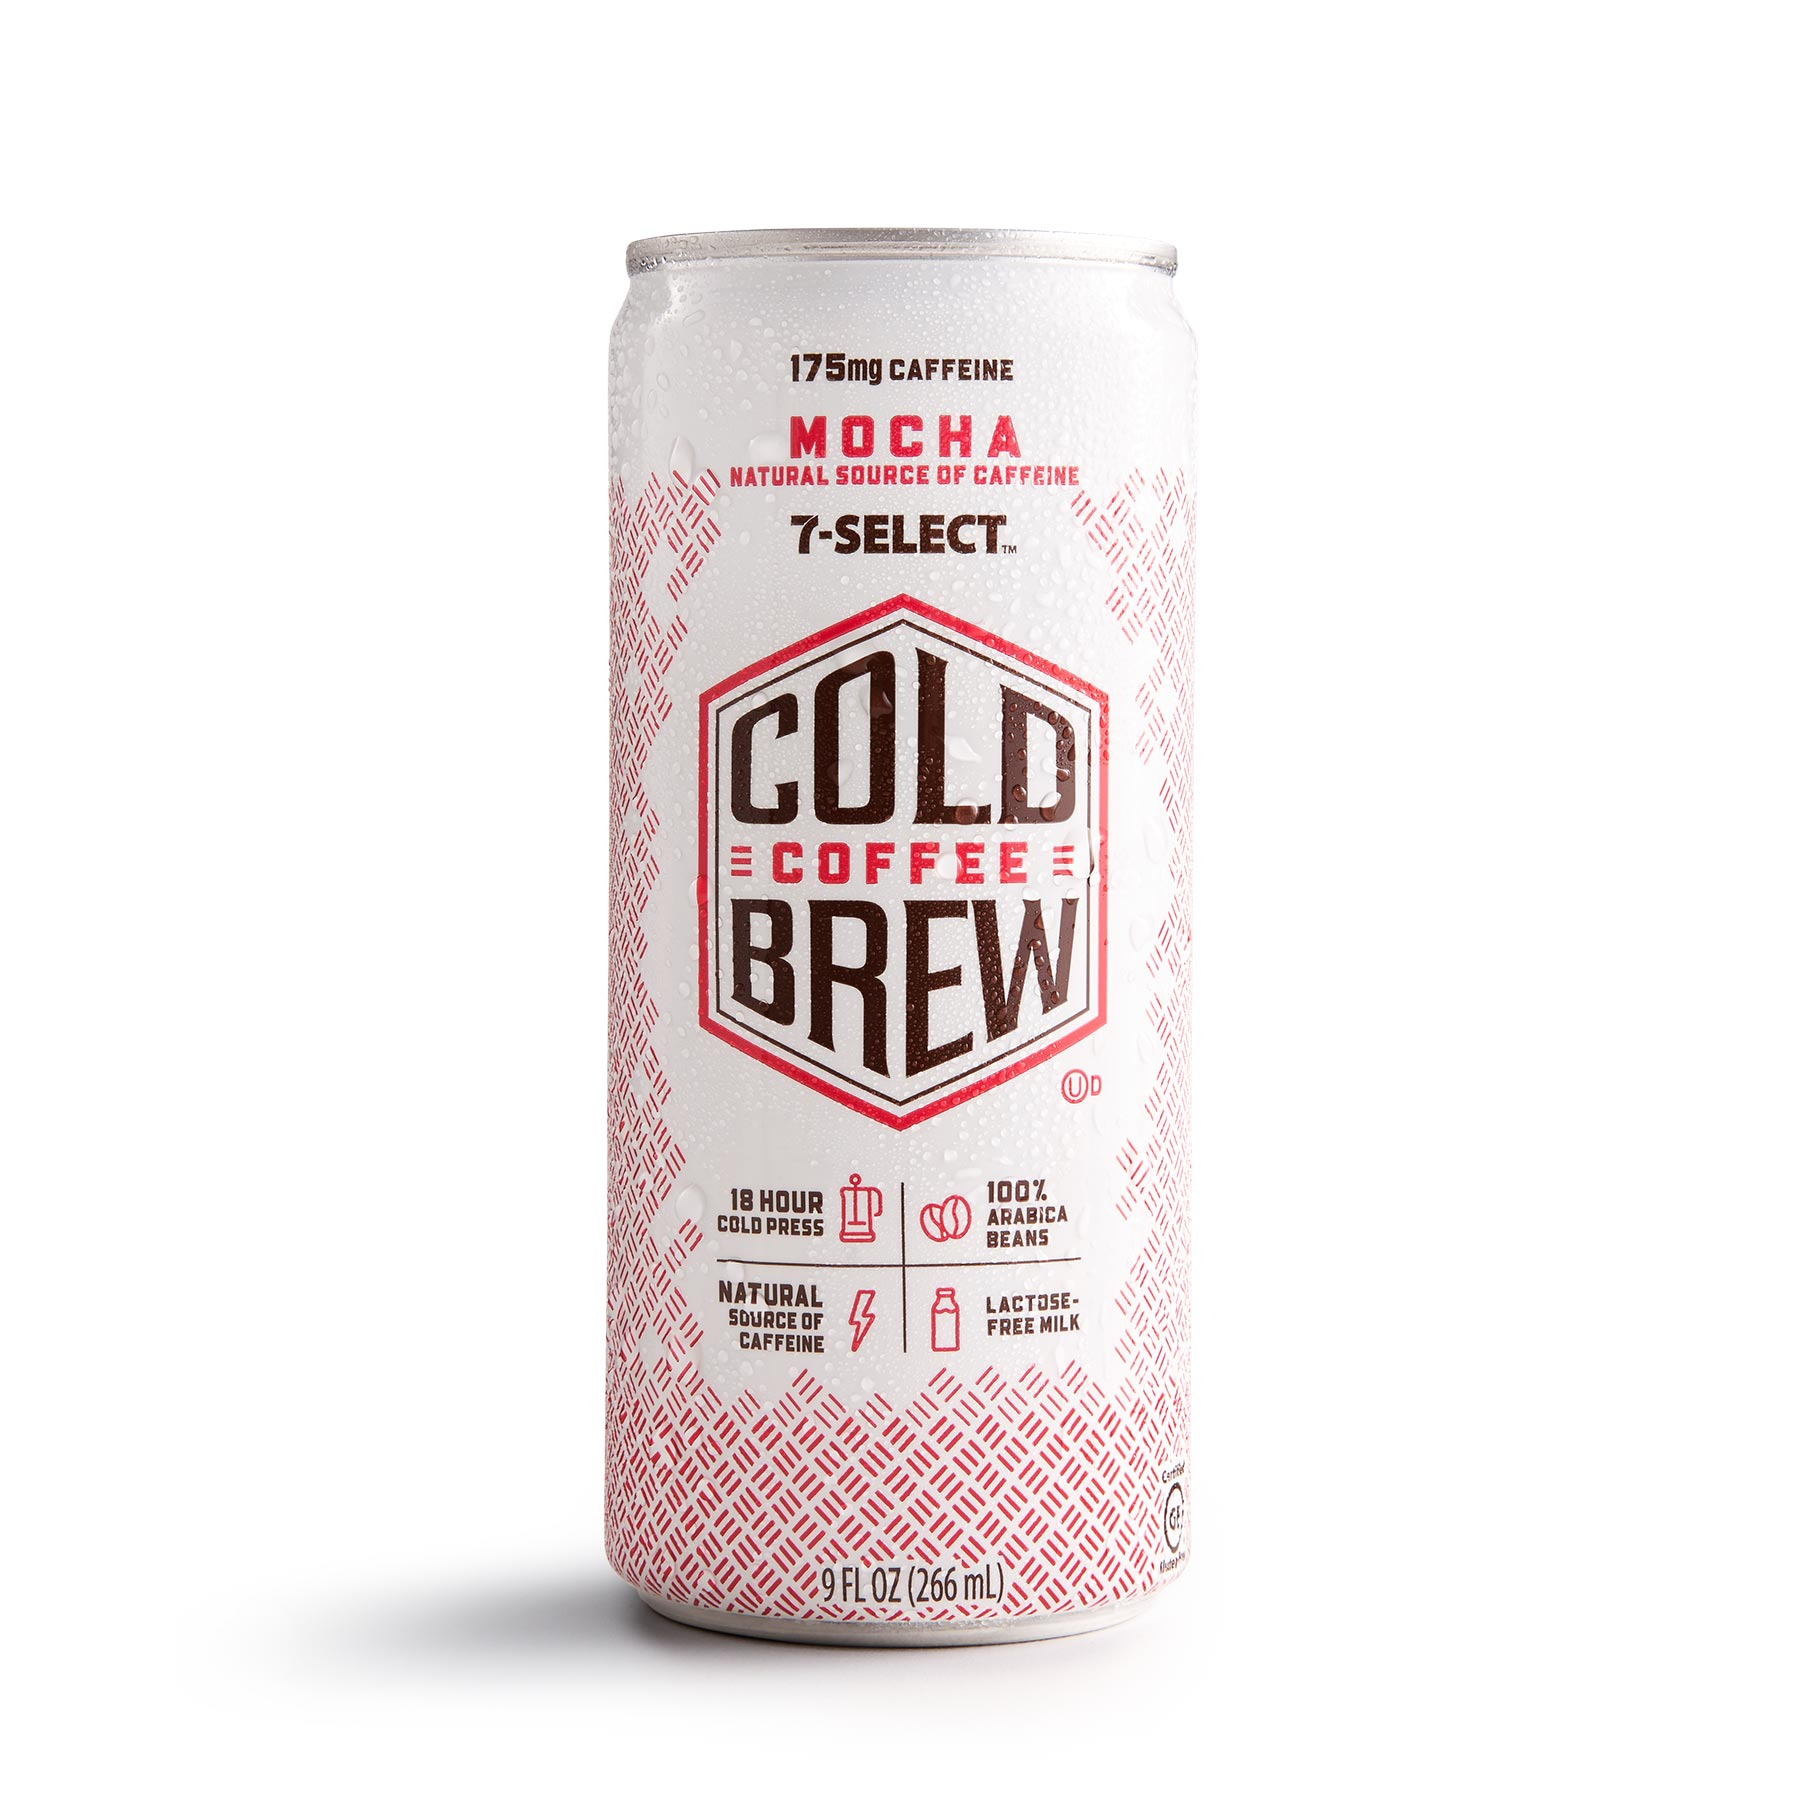 A 7-Select by 7-Eleven Cold Brew Coffee, mocha flavor.